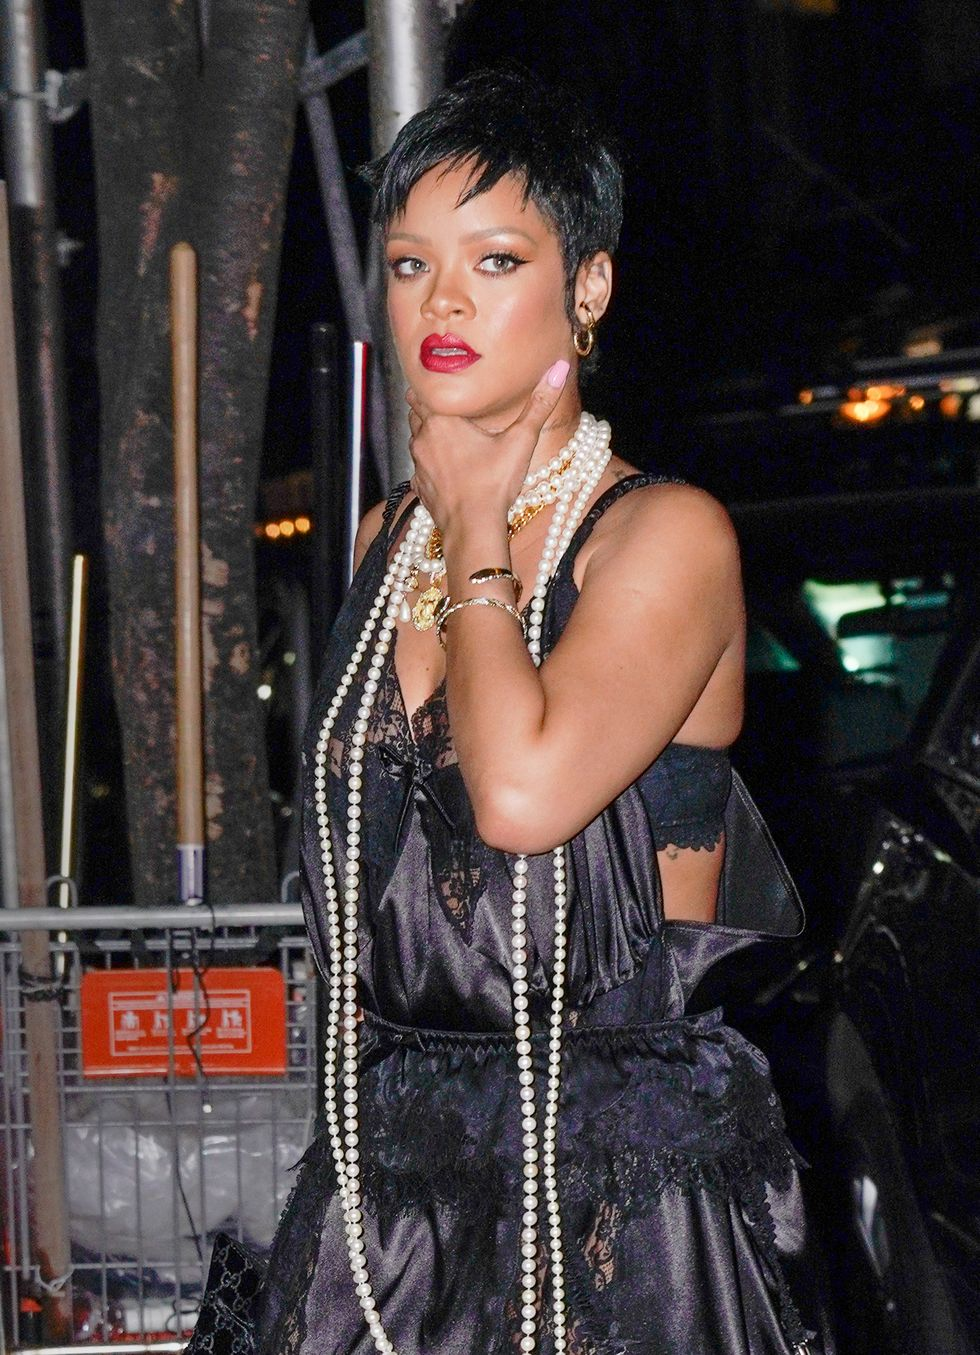 Rihanna Went Out in Lingerie, Pairing a Black Lace Teddy With Pearls at Carbone